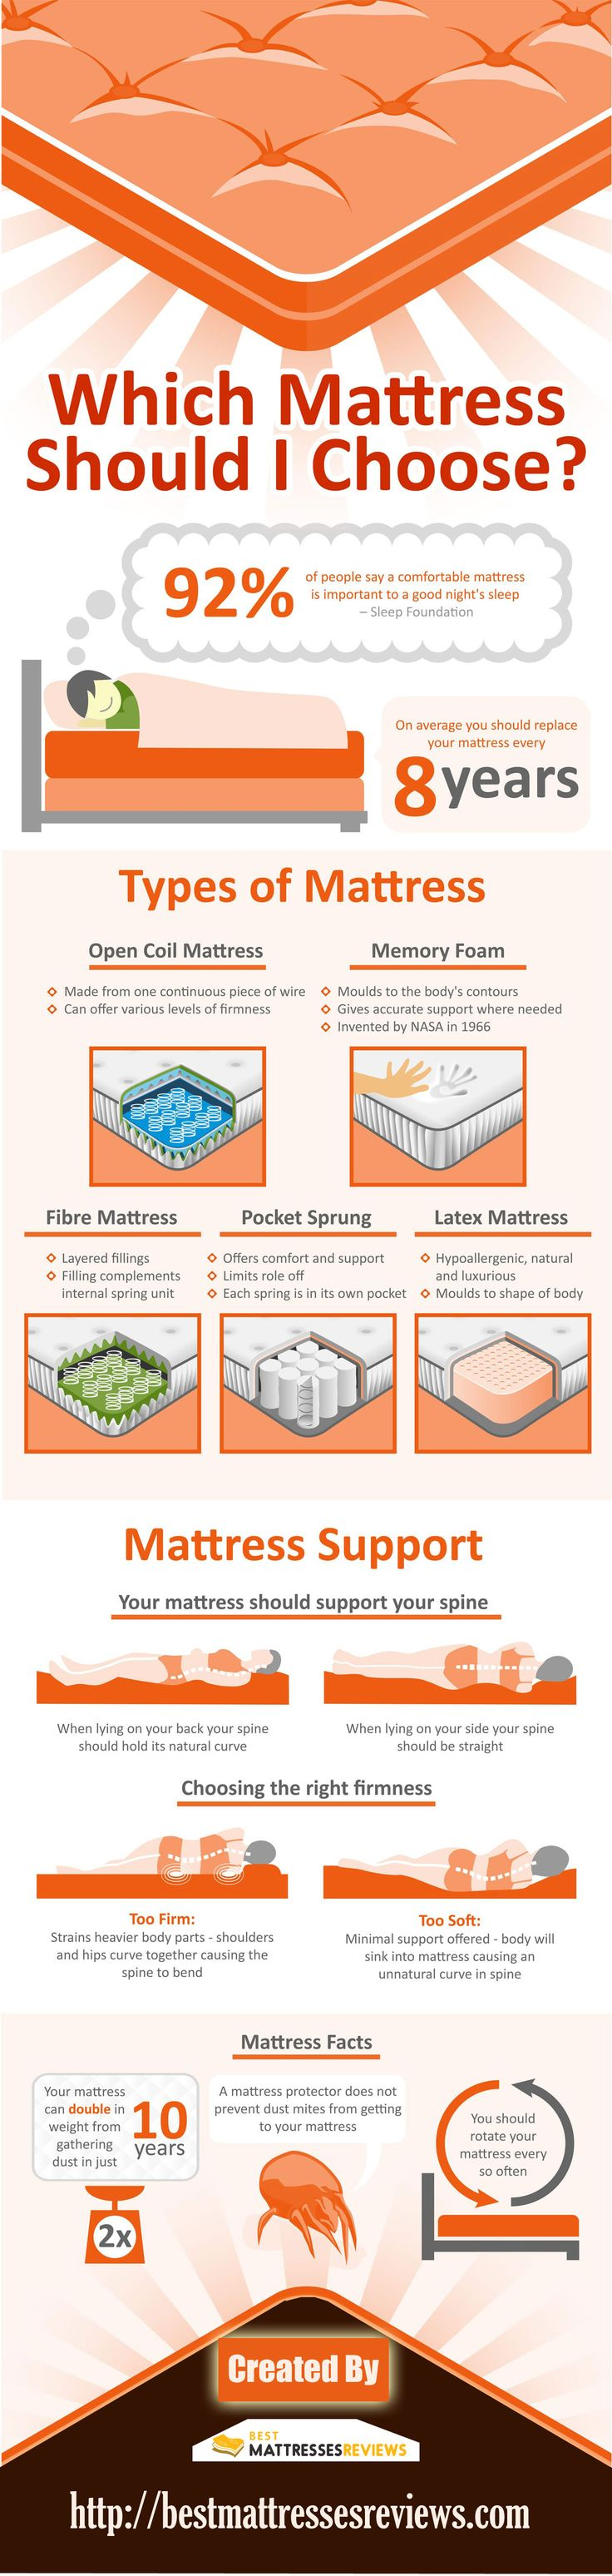 Which Mattress Should I Buy: Complete Mattress Buying Guide